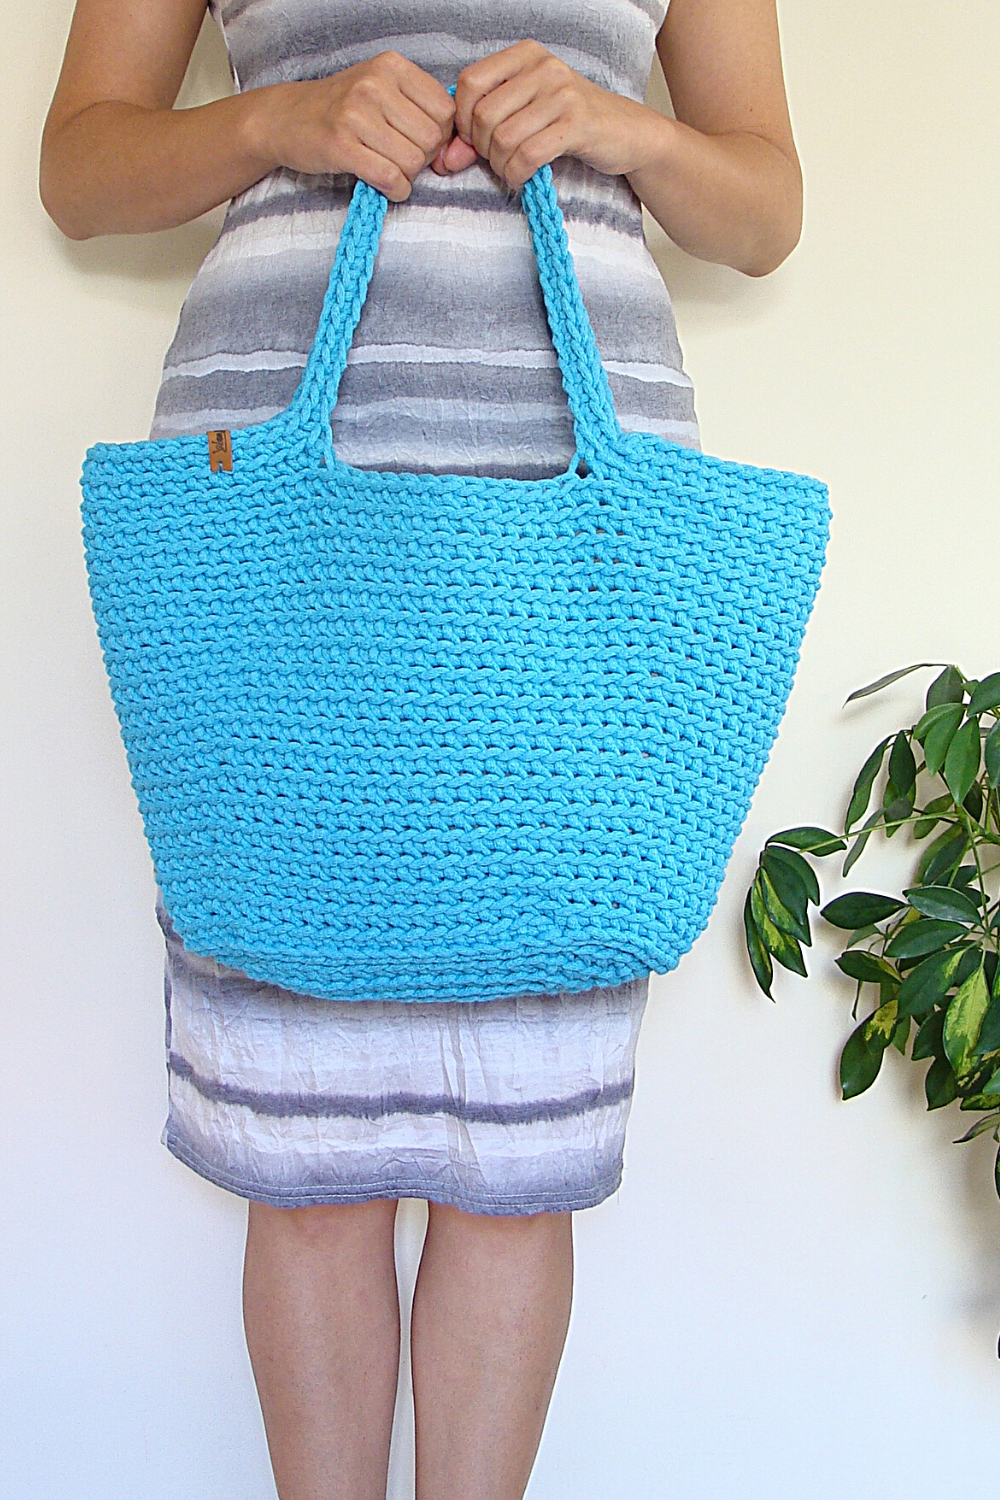 Crochet Tote Bag with Magnetic Closure